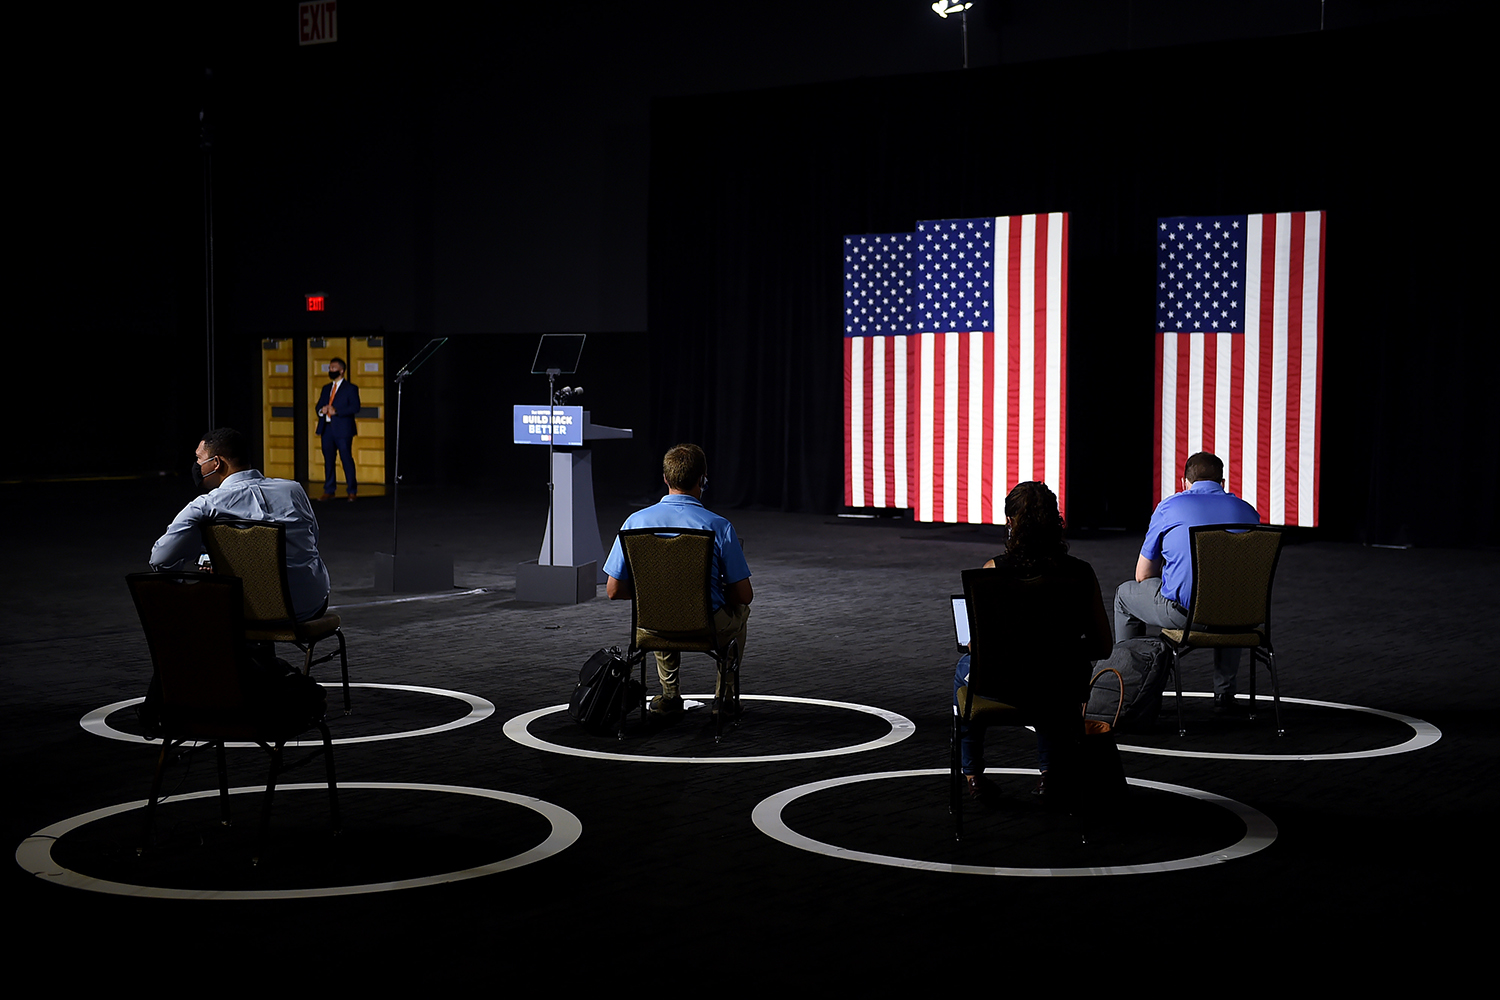 Socially distanced reporters wait for Democratic presidential candidate Joe Biden at a campaign event in Wilmington, Delaware, on July 14. OLIVIER DOULIERY/AFP via Getty Images